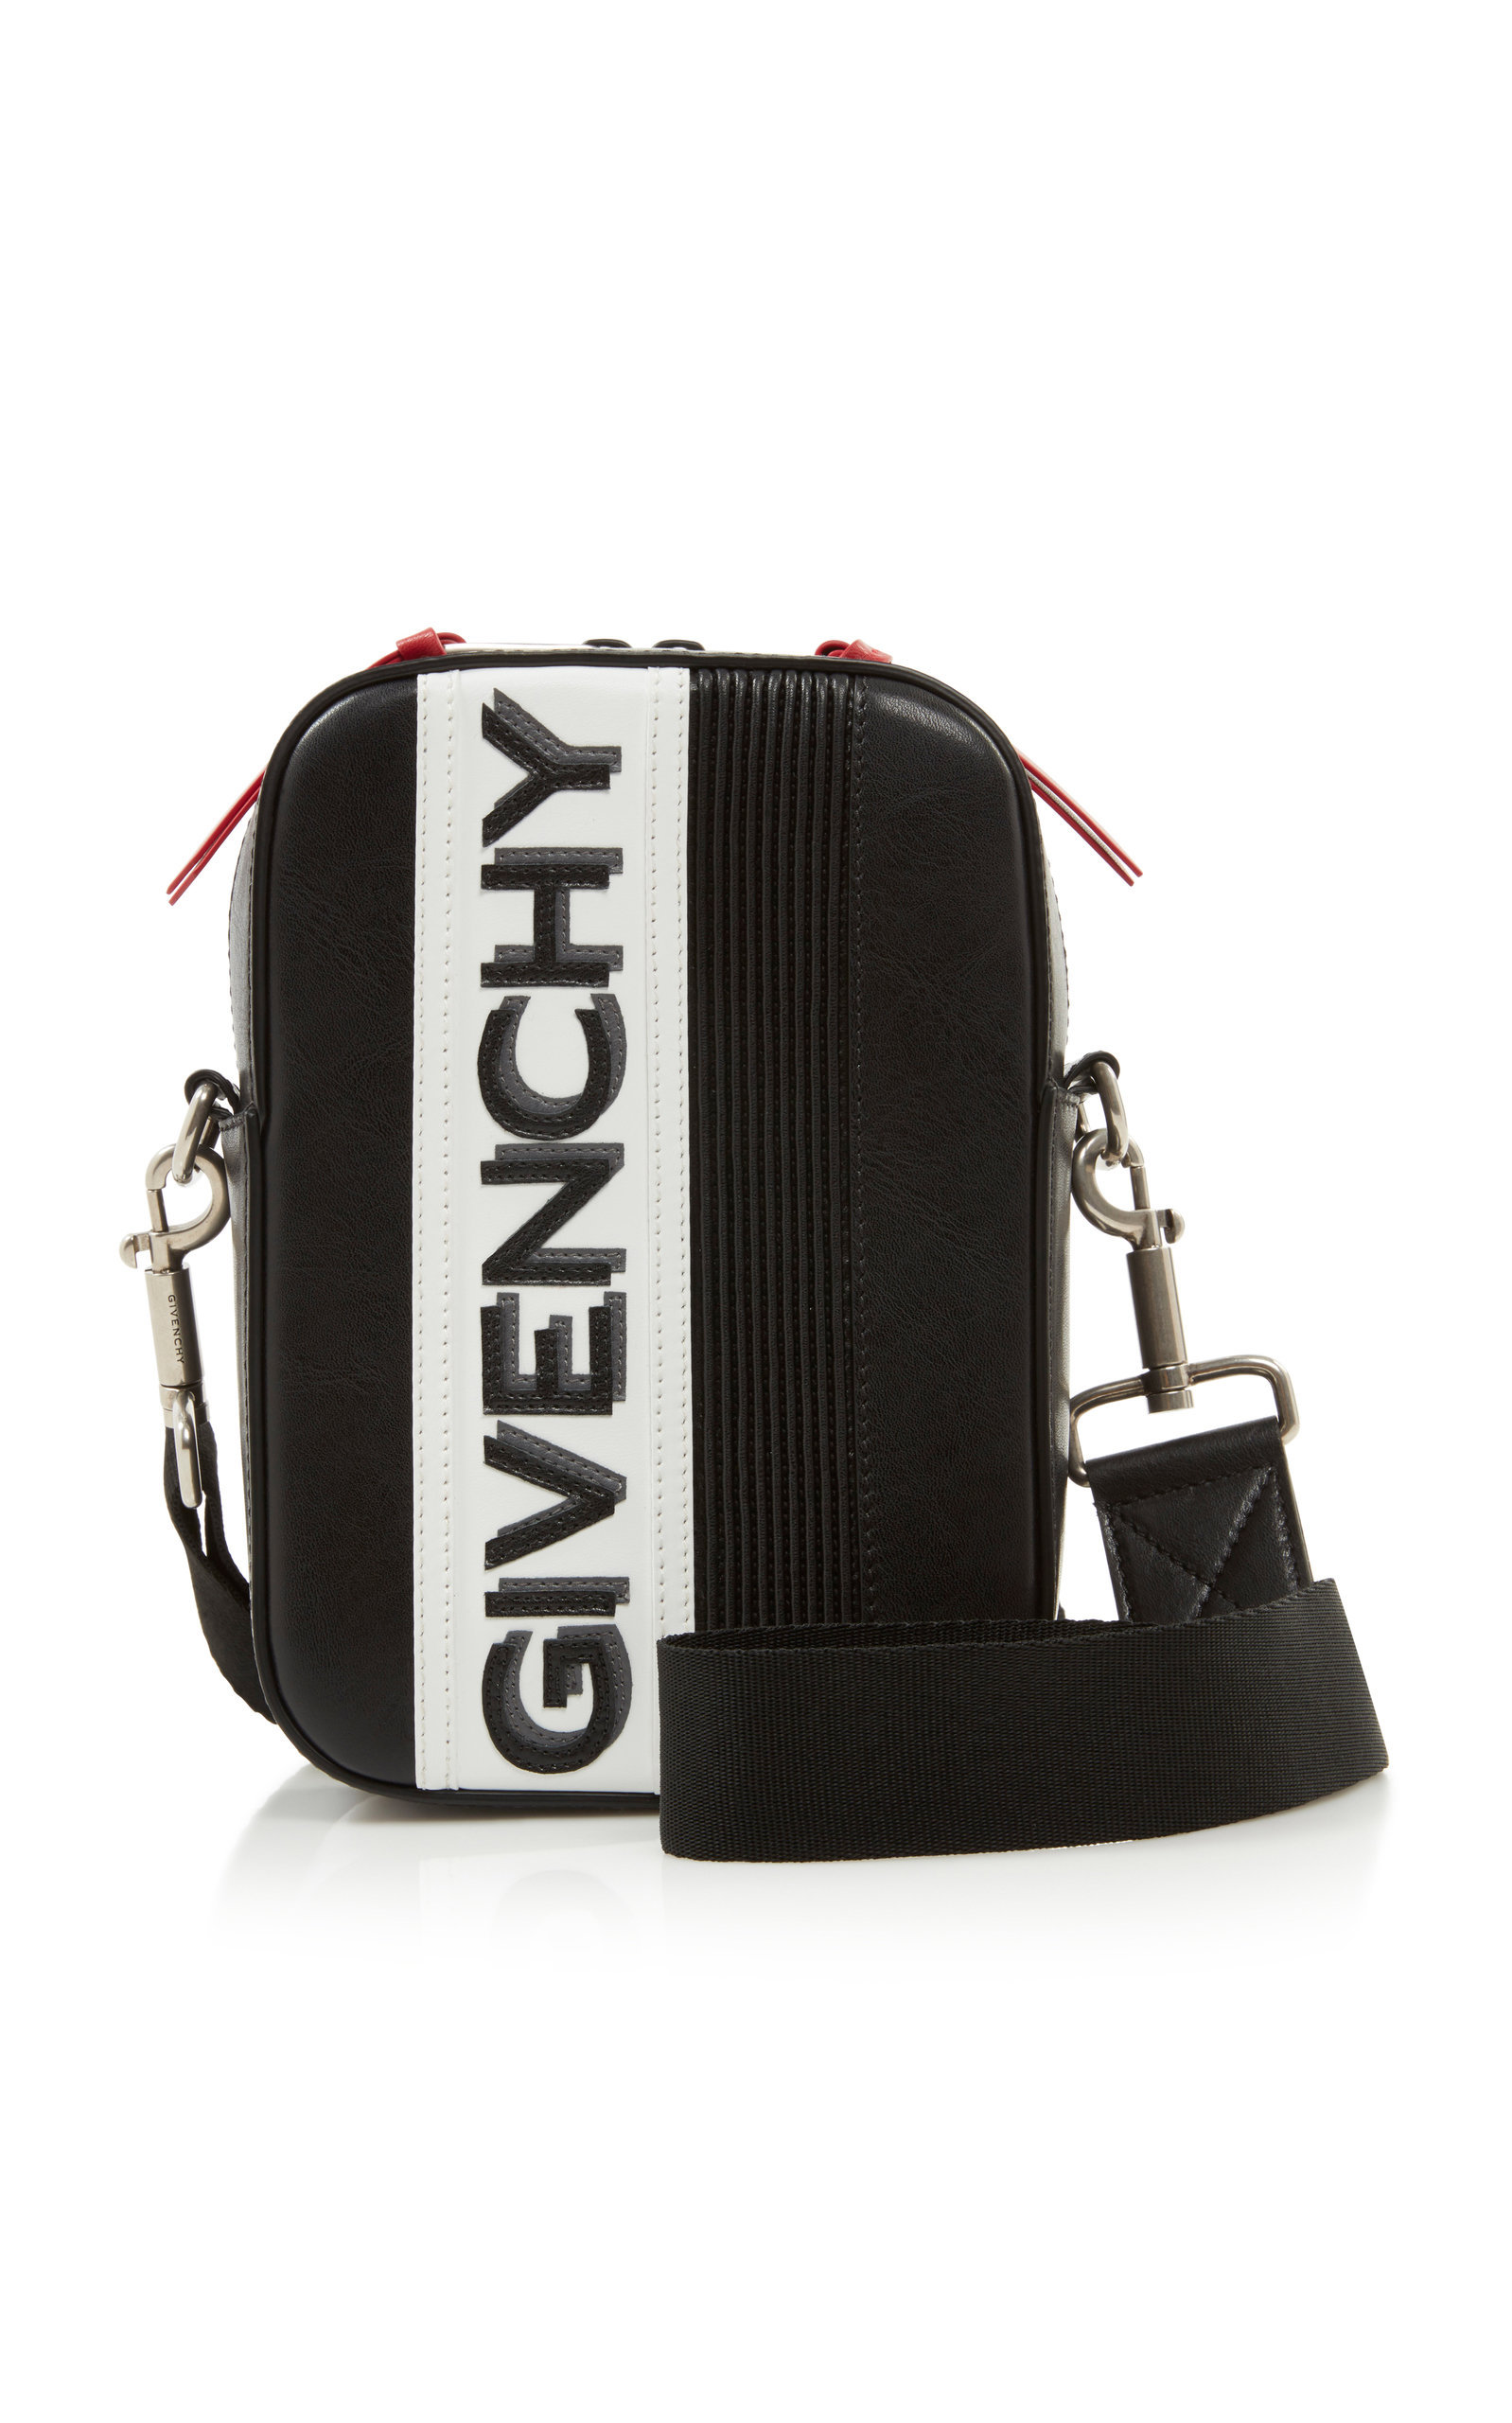 Givenchy Mc3 Leather Crossbody Bag In Black Modesens Leather Crossbody Bag Leather Messenger Bag Bags